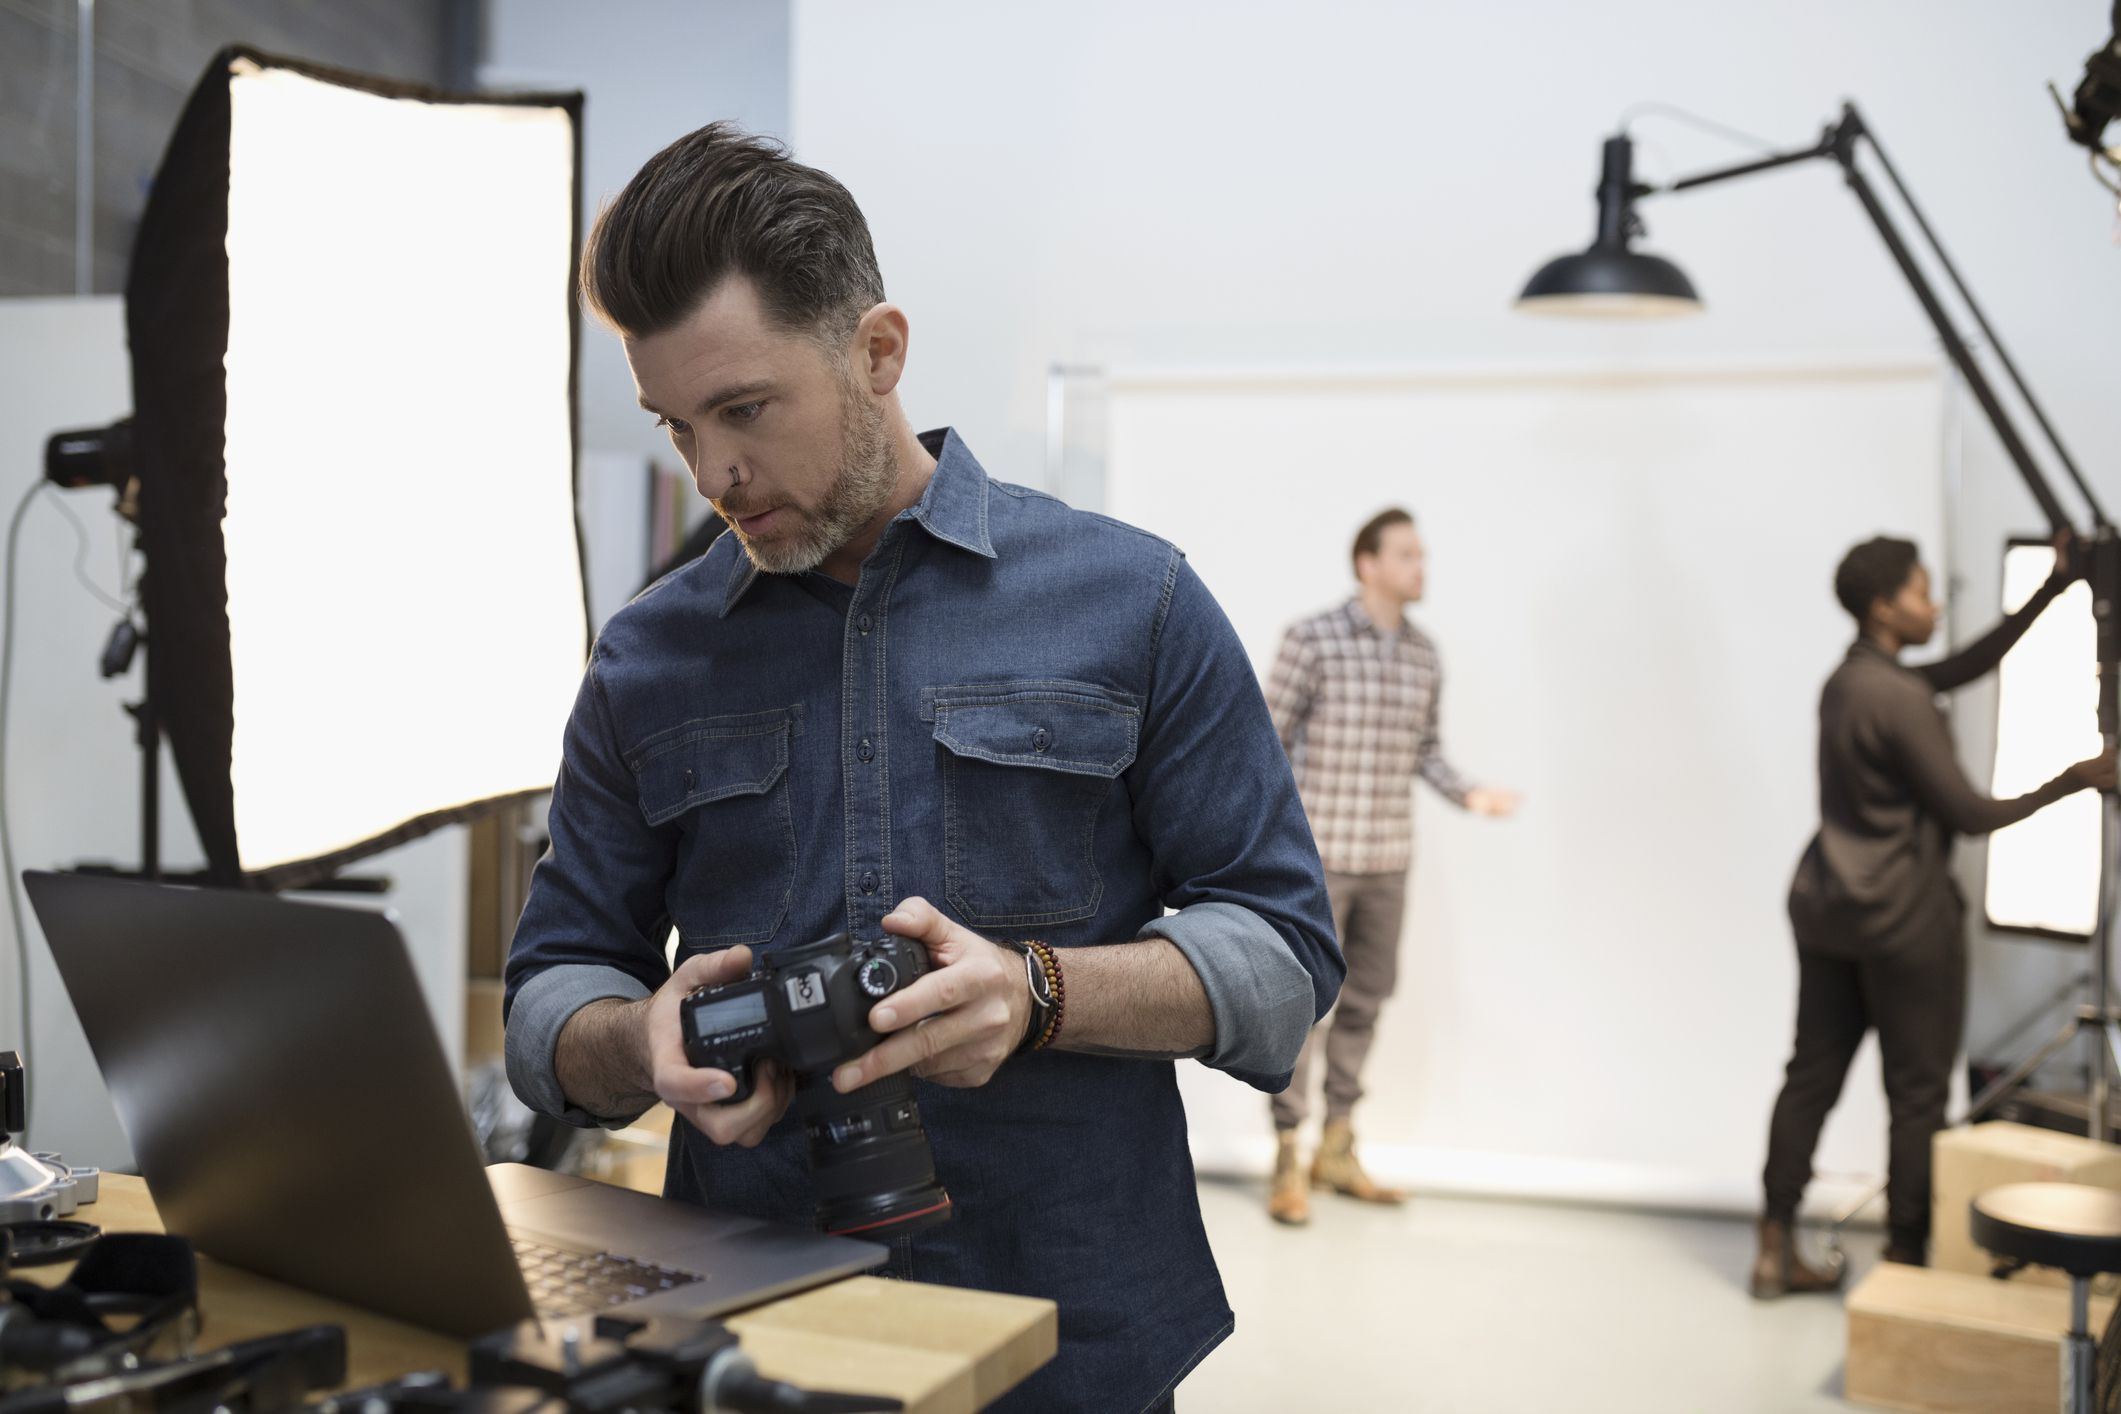 The 9 Best Laptops for Photography in 2021